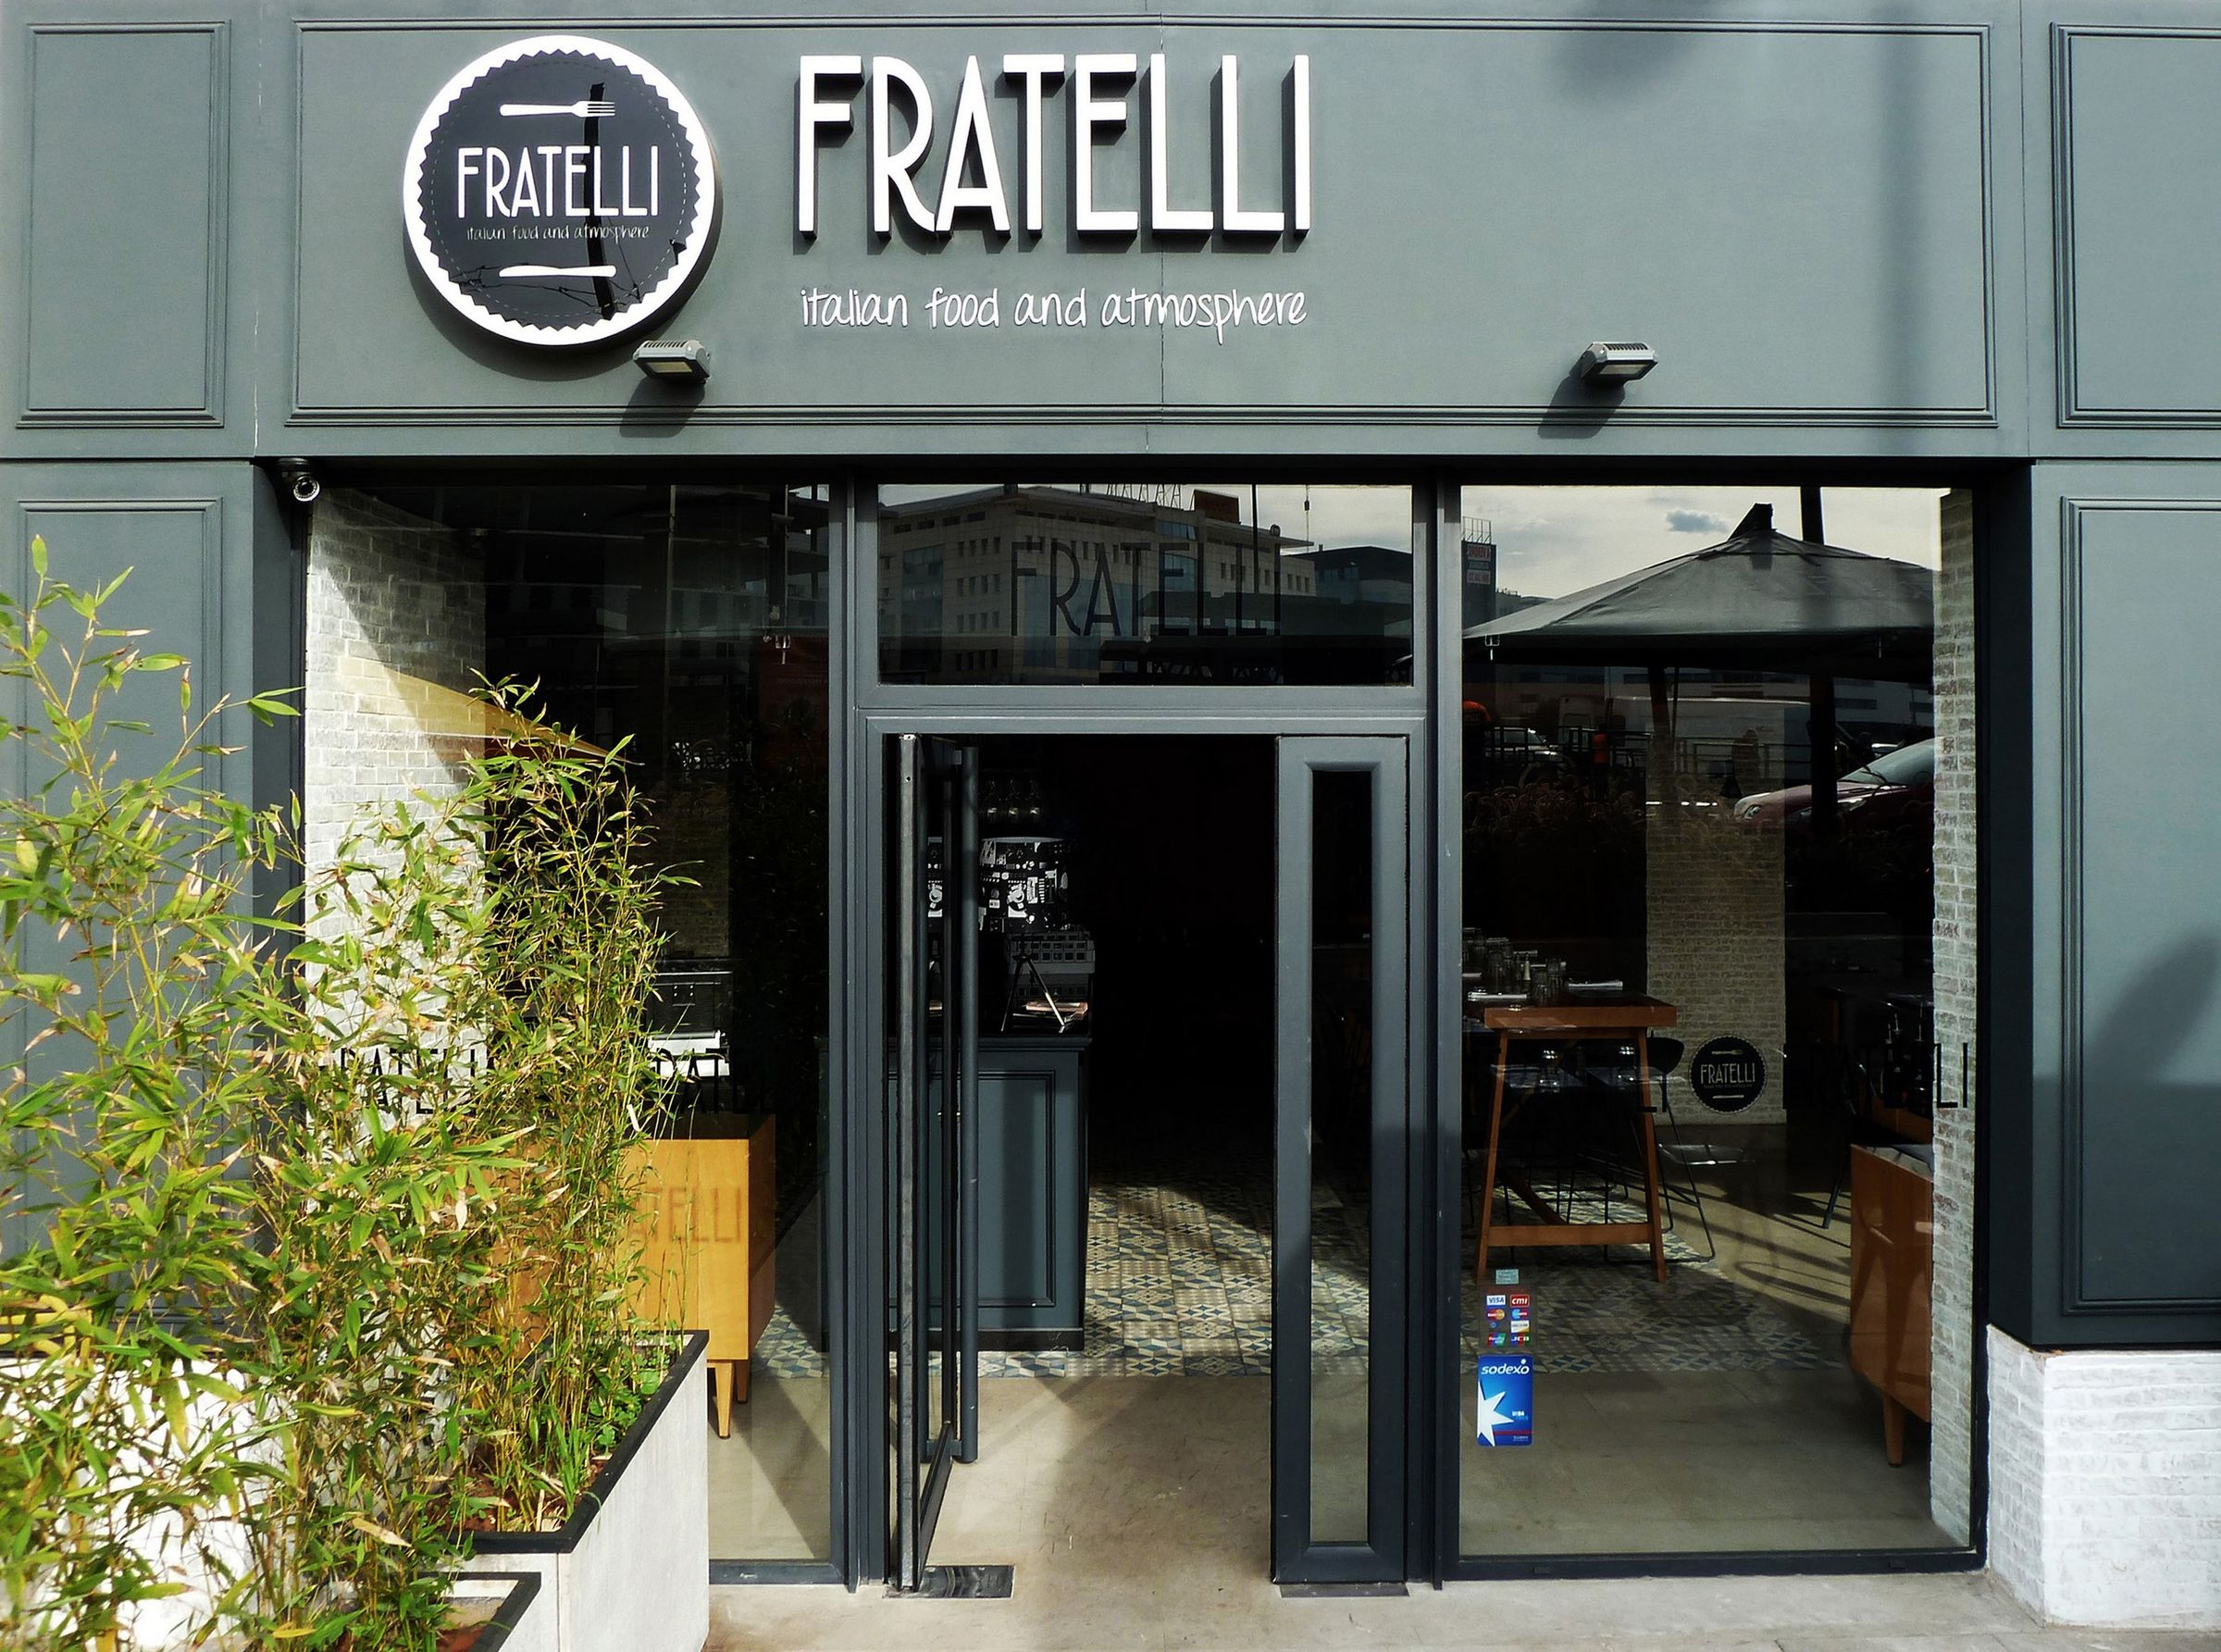 Fratelli Italian Restaurant Atmosphere Dum Dum Design Archello